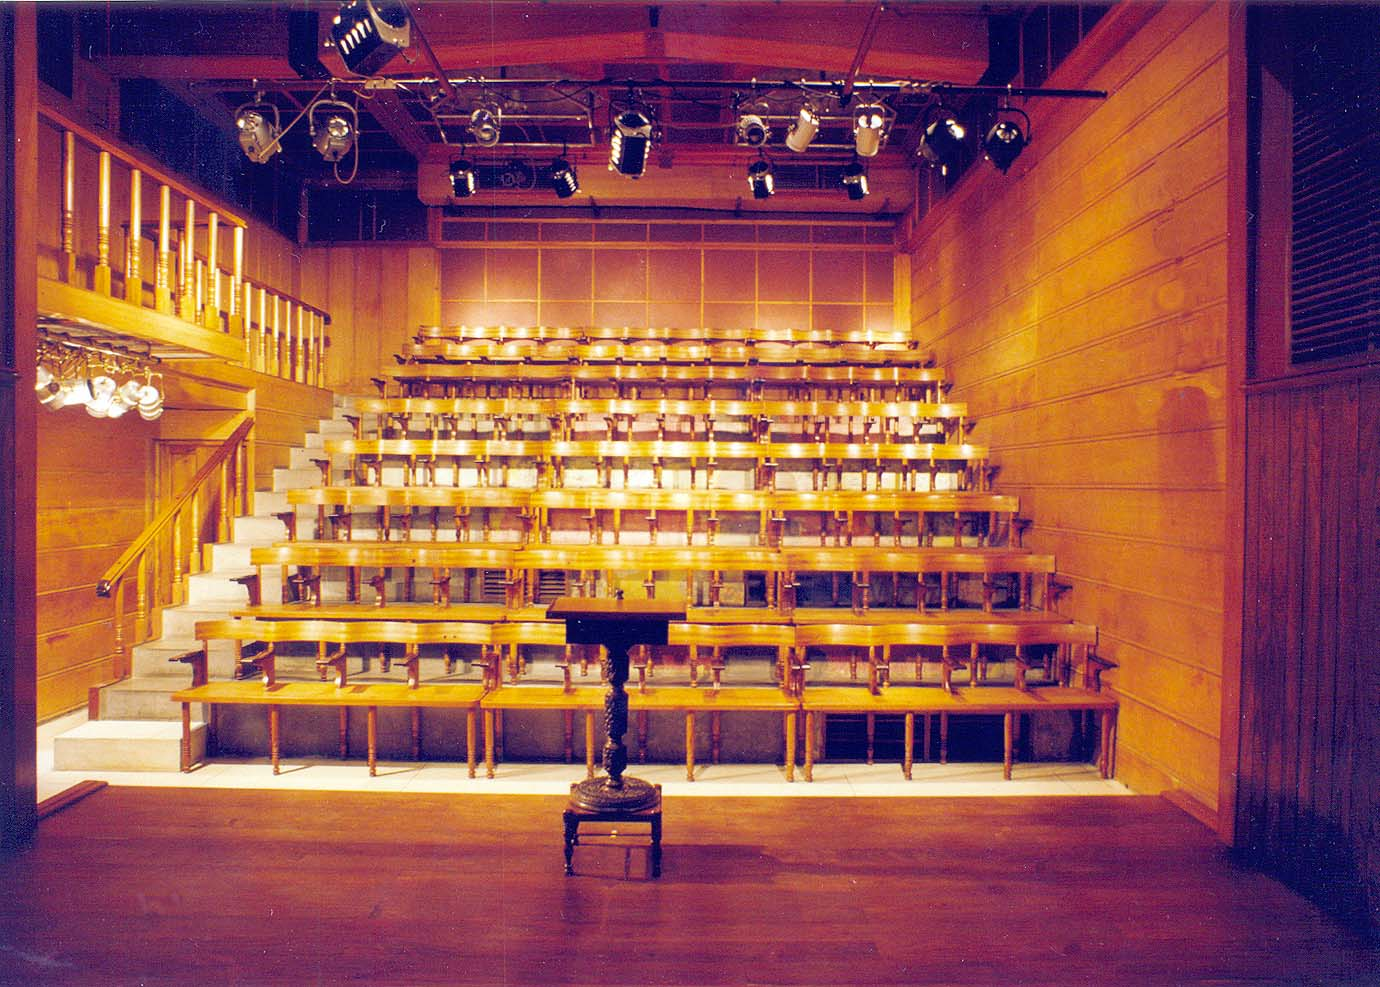 The indoor theatre